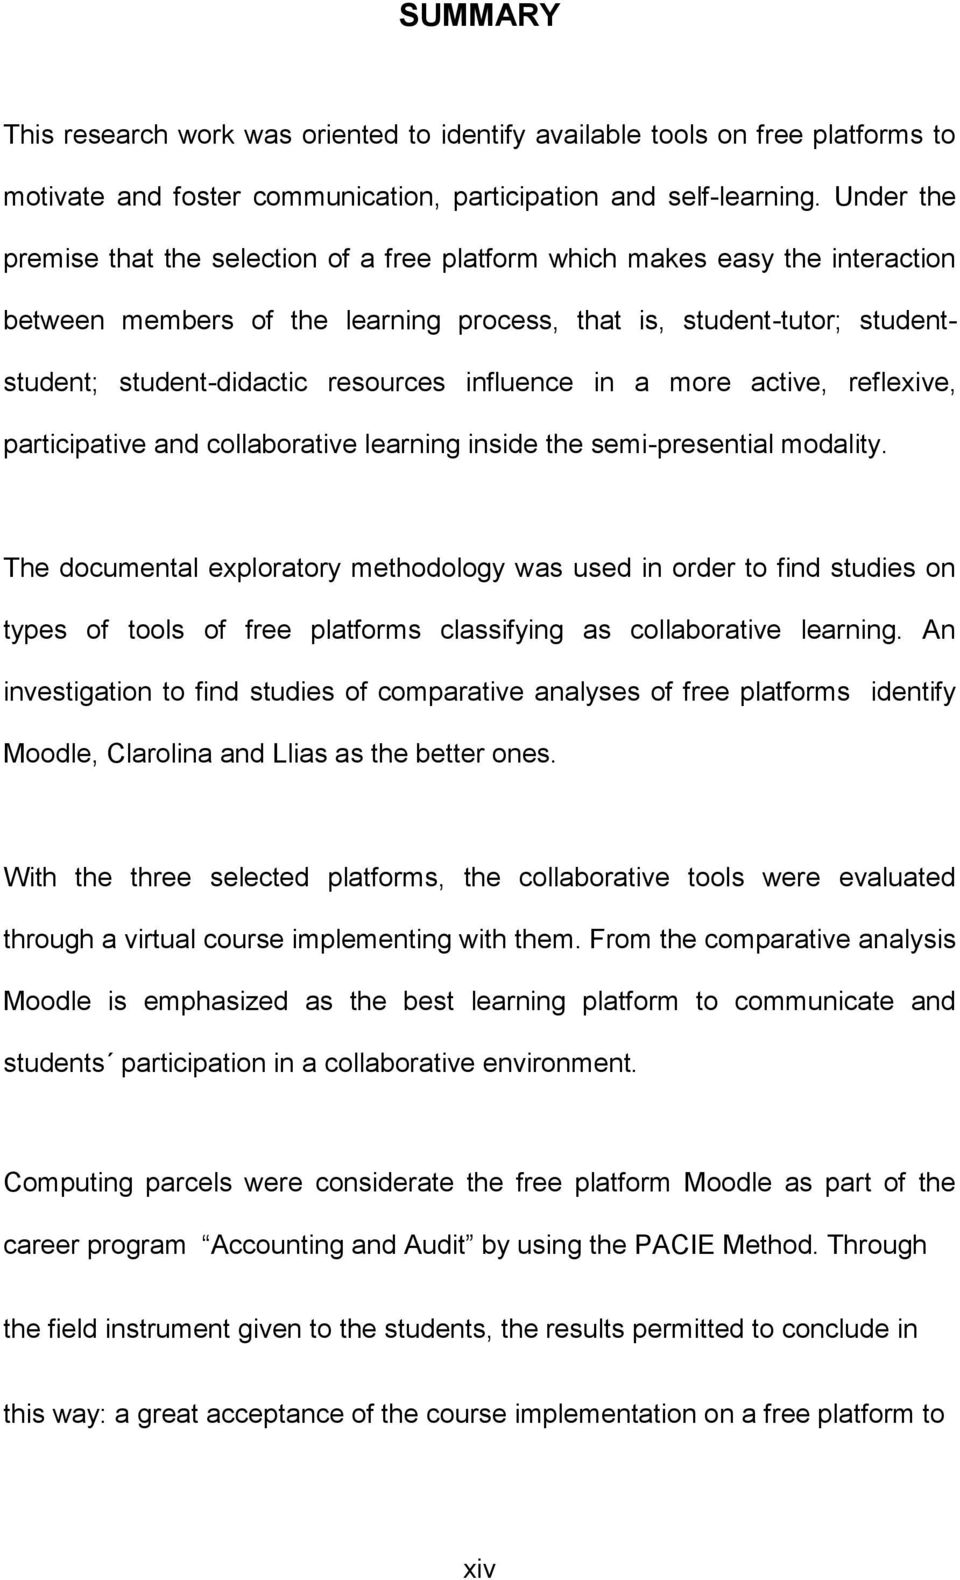 influence in a more active, reflexive, participative and collaborative learning inside the semi-presential modality.